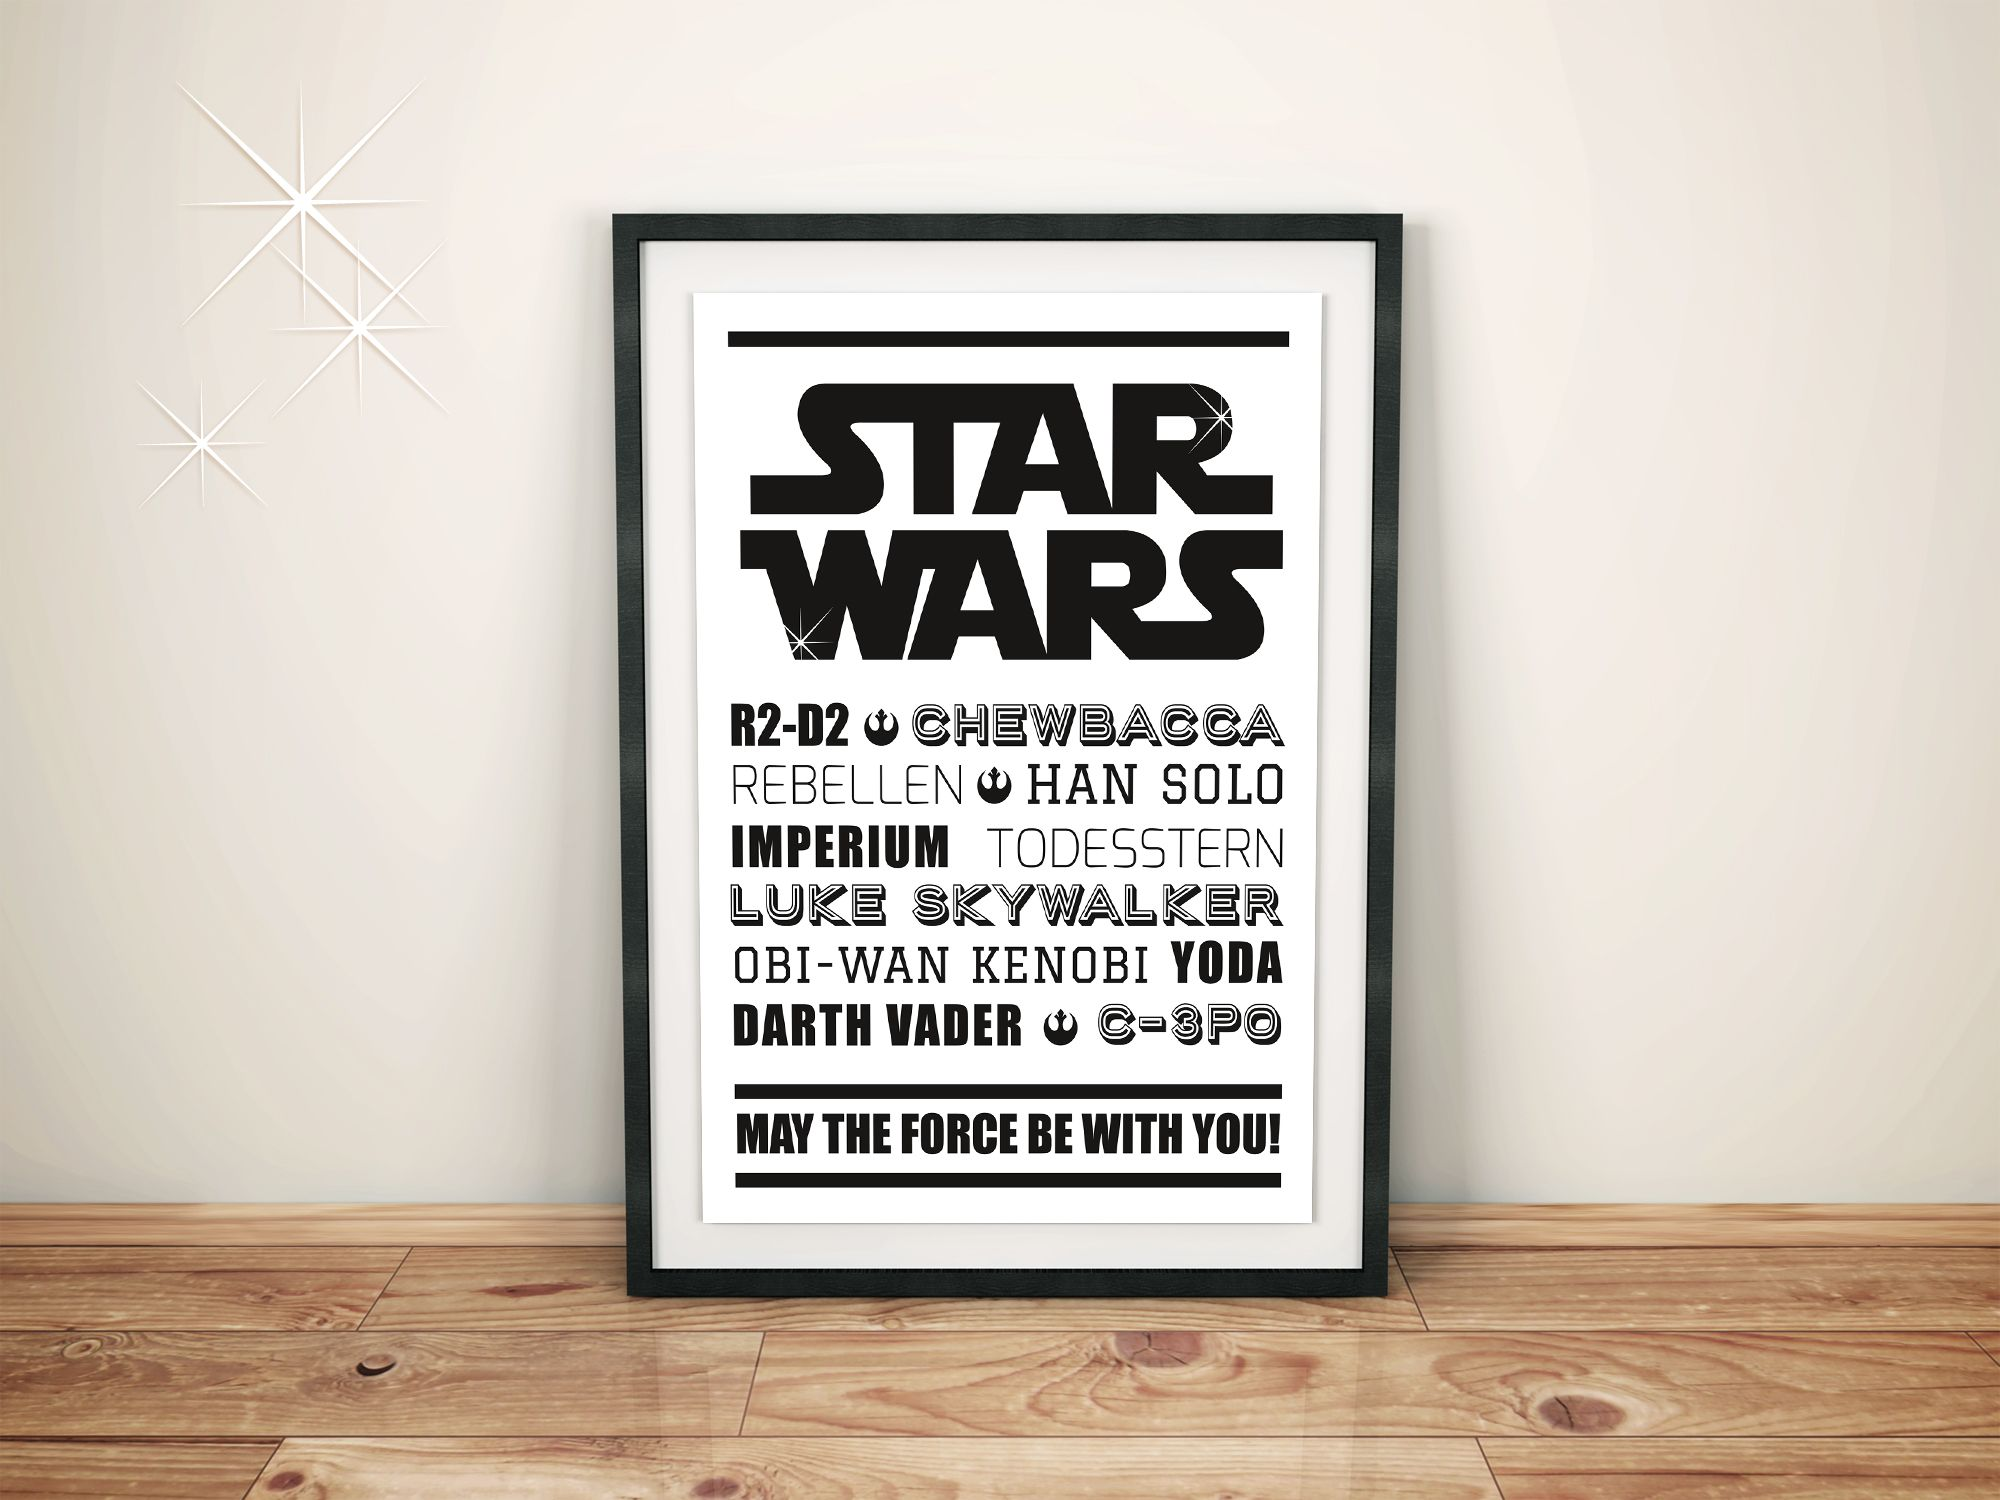 geschenkideen m nner f r leseratten und star wars fans inspiration room pinterest. Black Bedroom Furniture Sets. Home Design Ideas